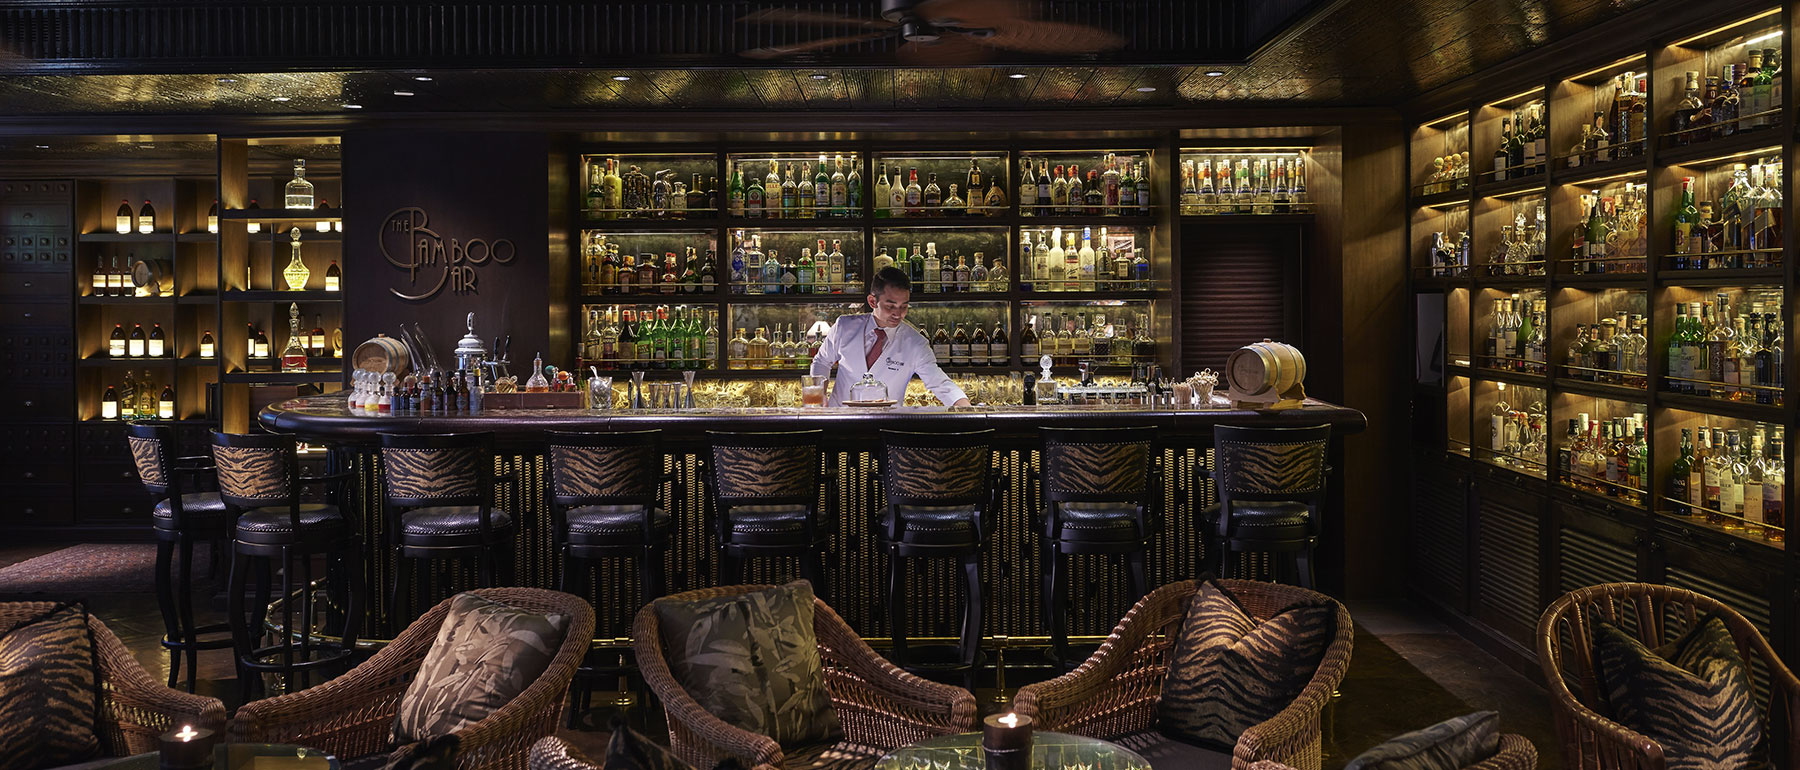 The Bamboo Bar Bangkok Best Luxury For Drinks And Live Music